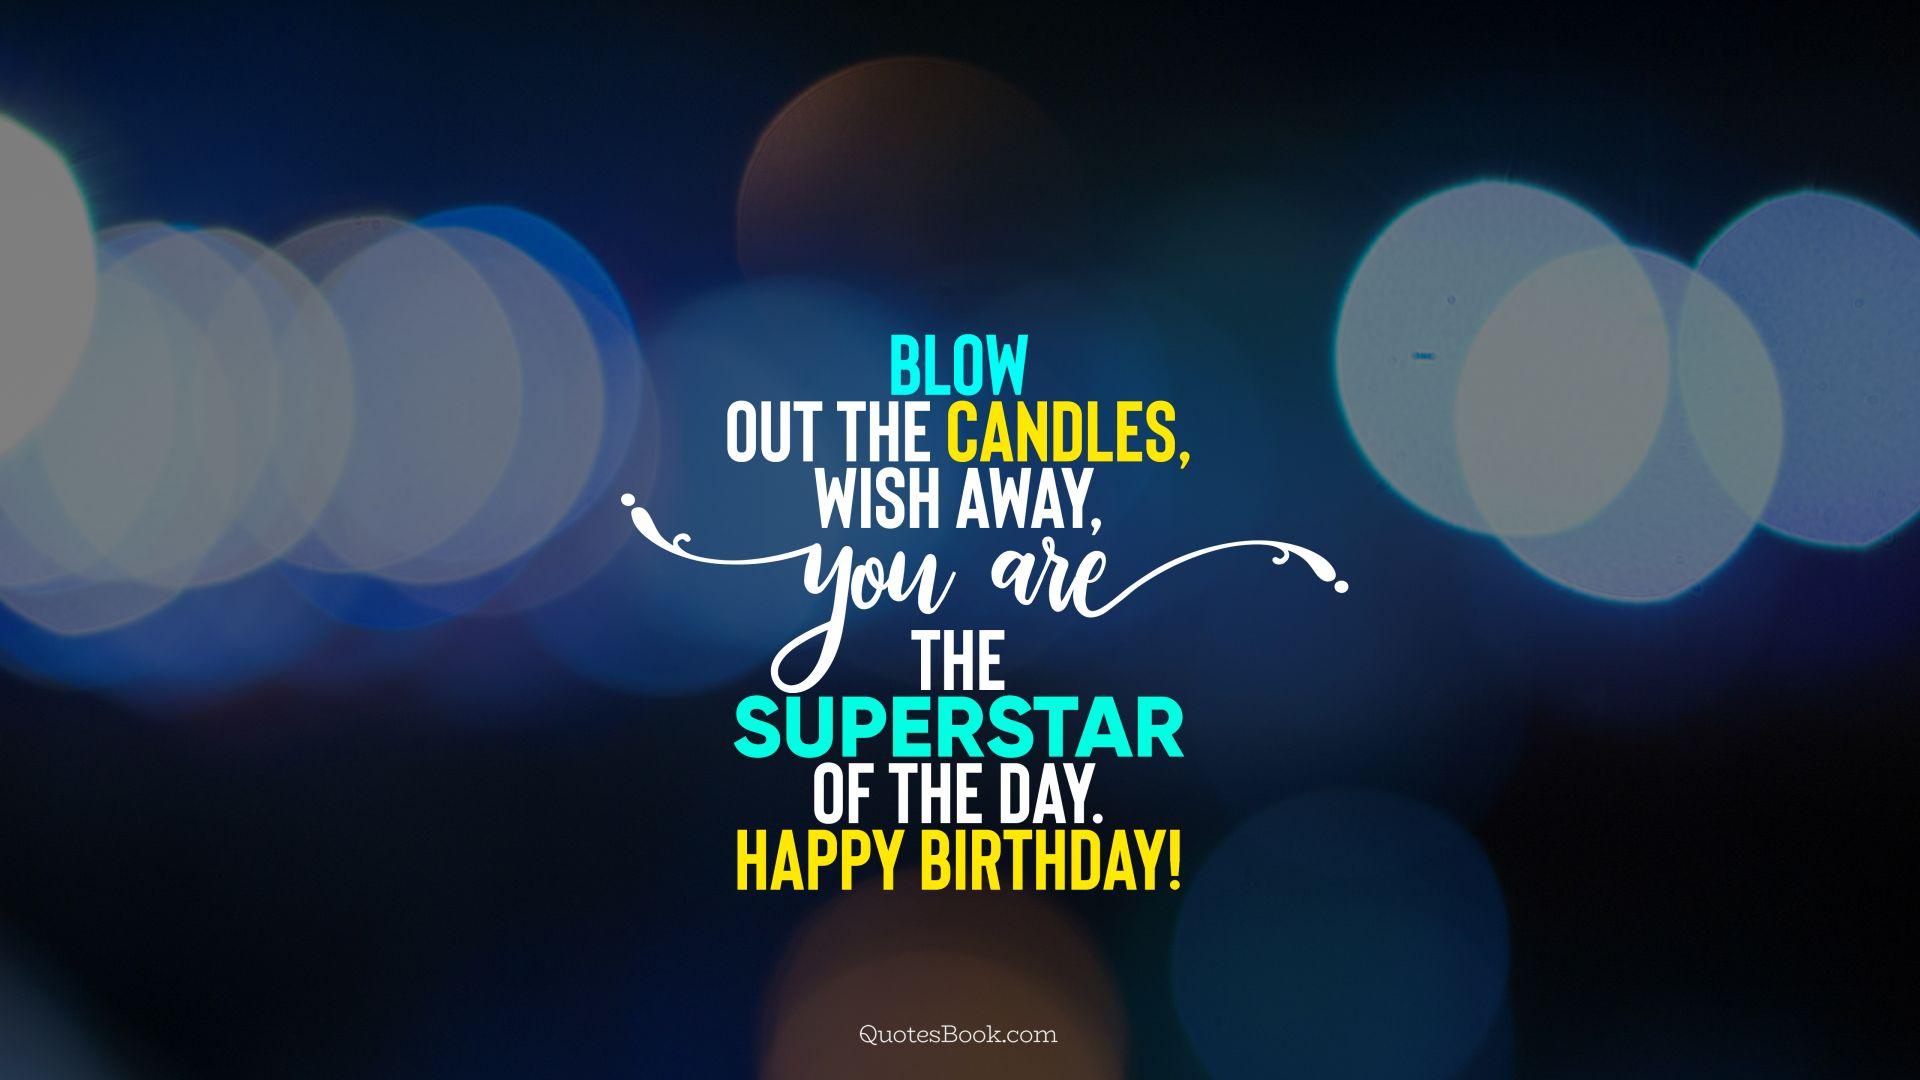 Blow out the candles, wish away, you are the superstar of the day. Happy Birthday!